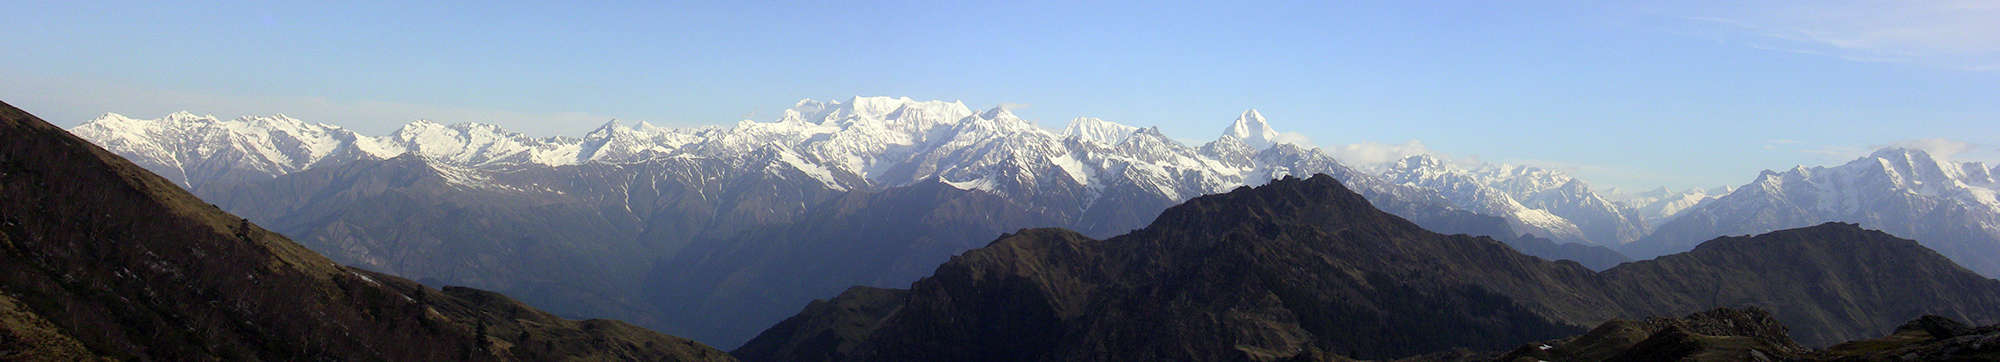 GHT India Treks - Kuari Pass, Kumaon